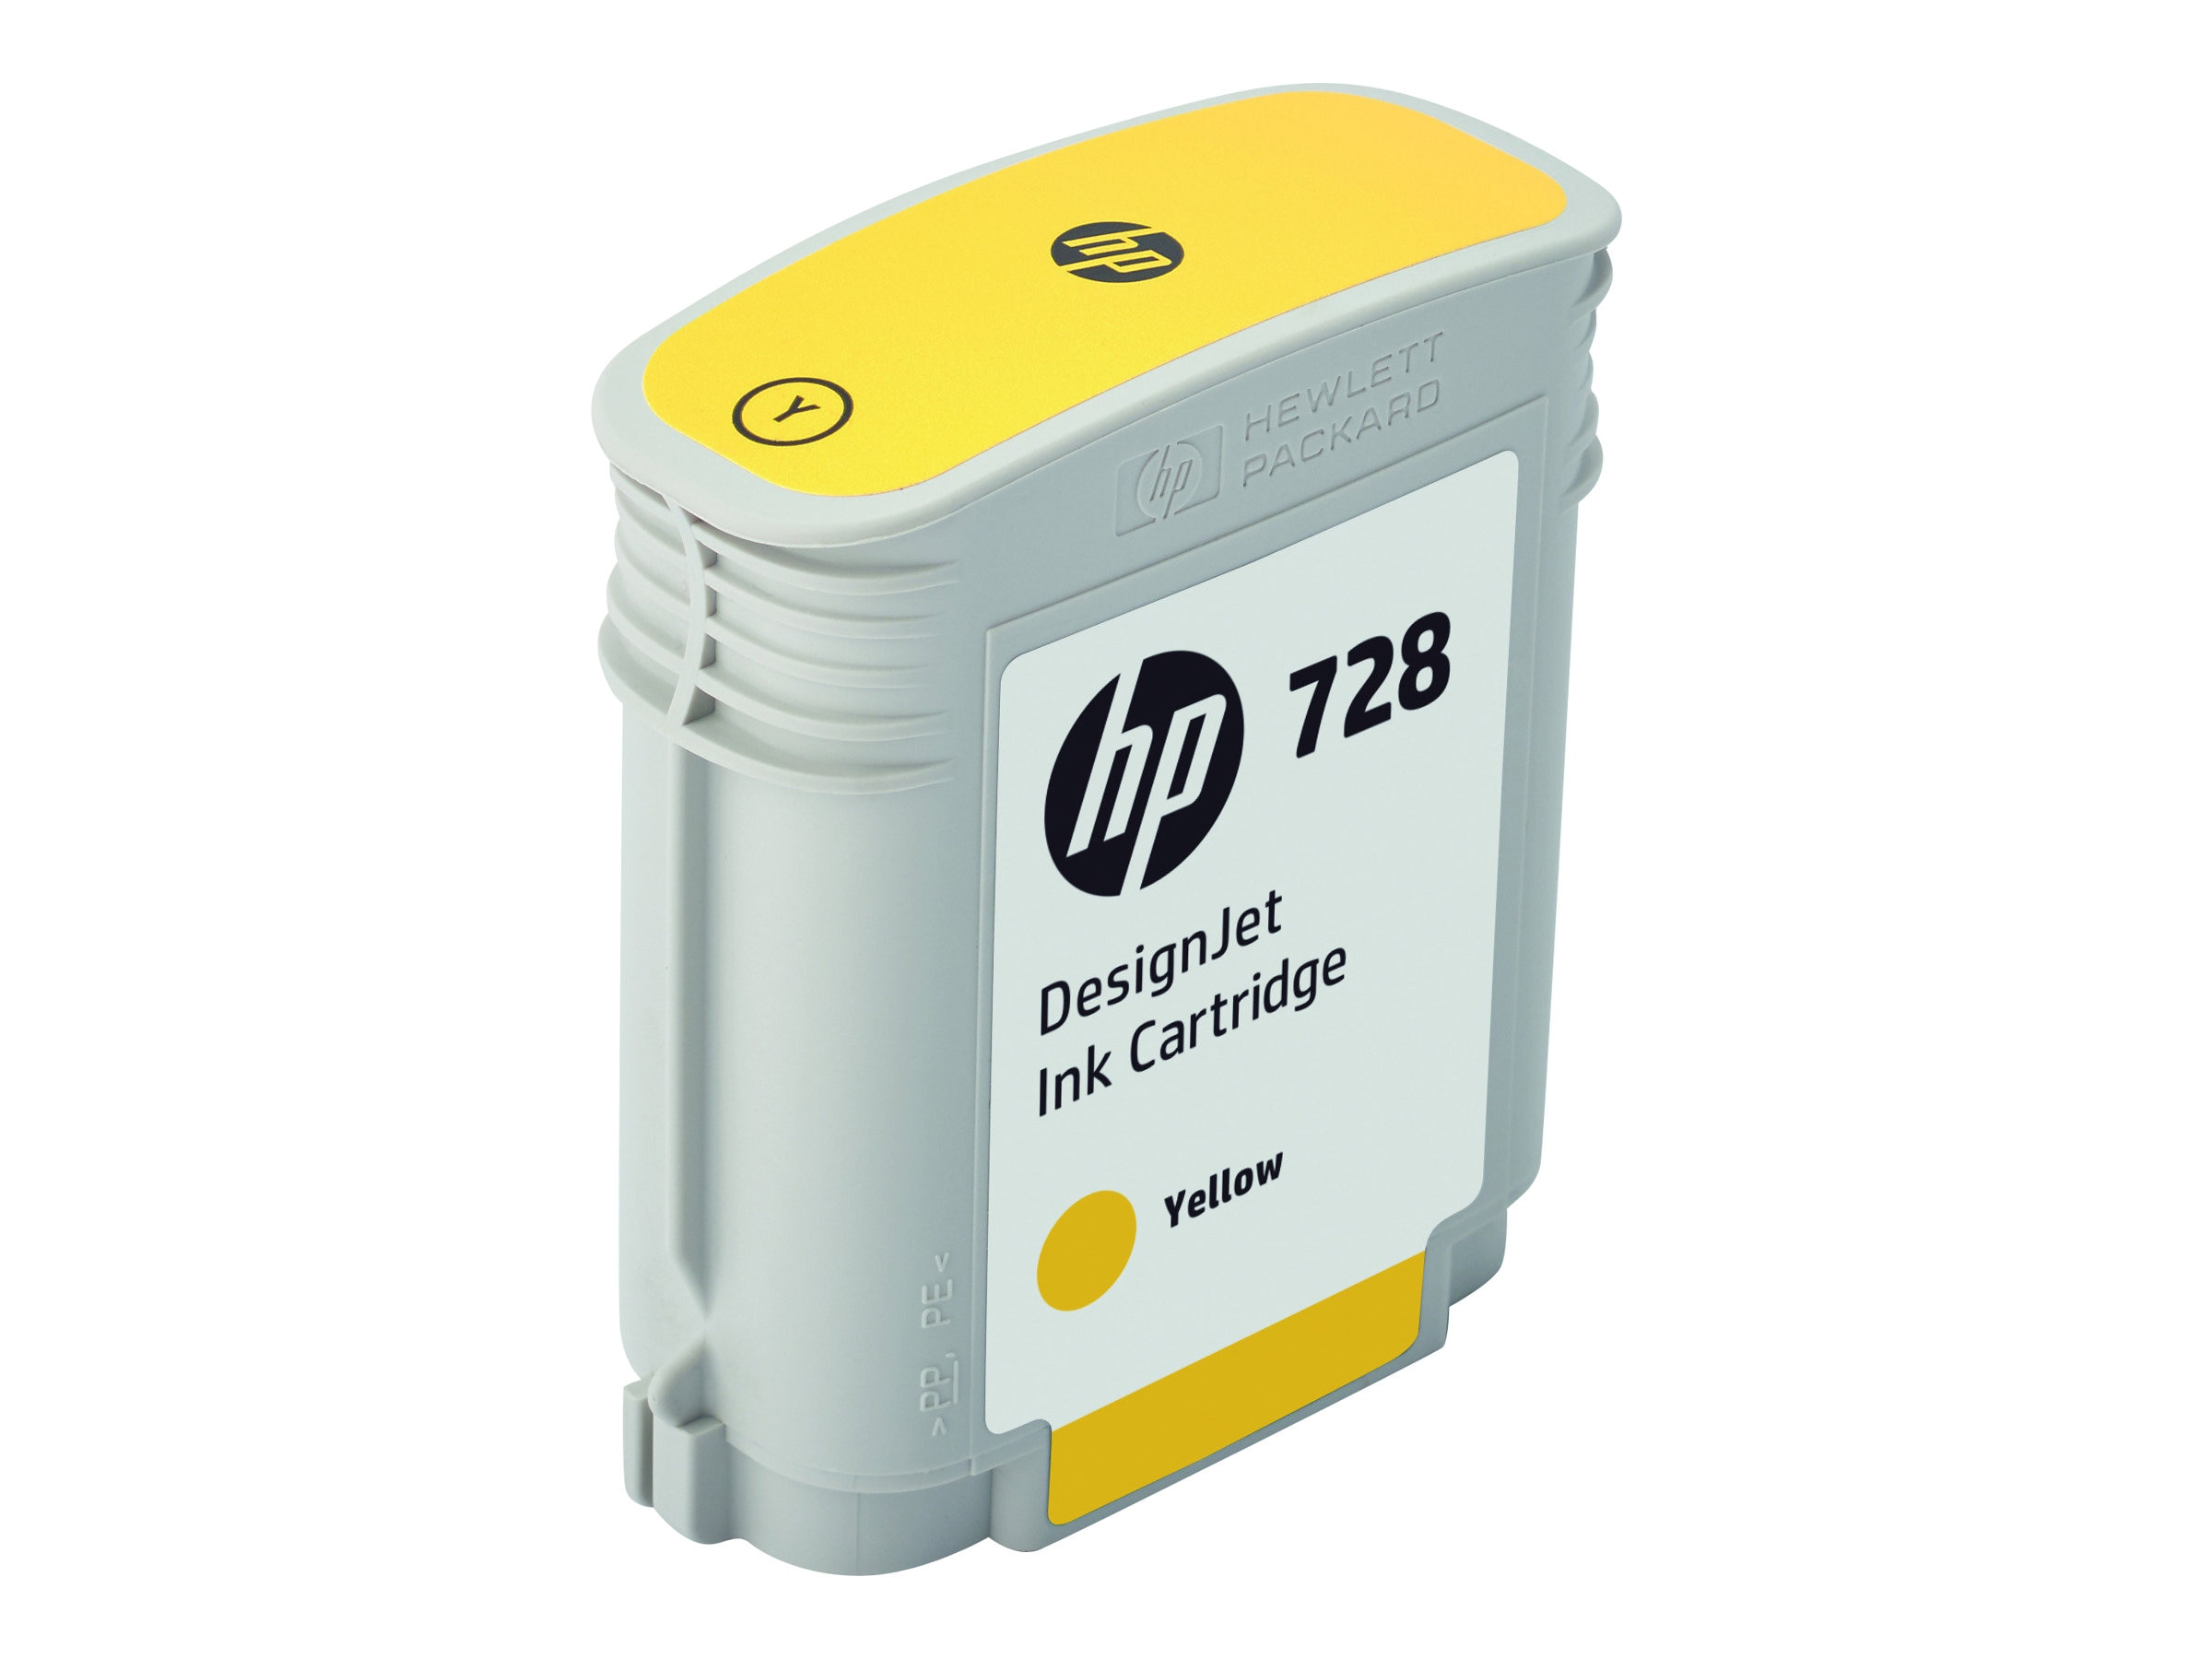 HP 728 (F9J61A) 40ml Yellow Designjet Ink Cartridge for HP DesignJet T730 & T830 Series